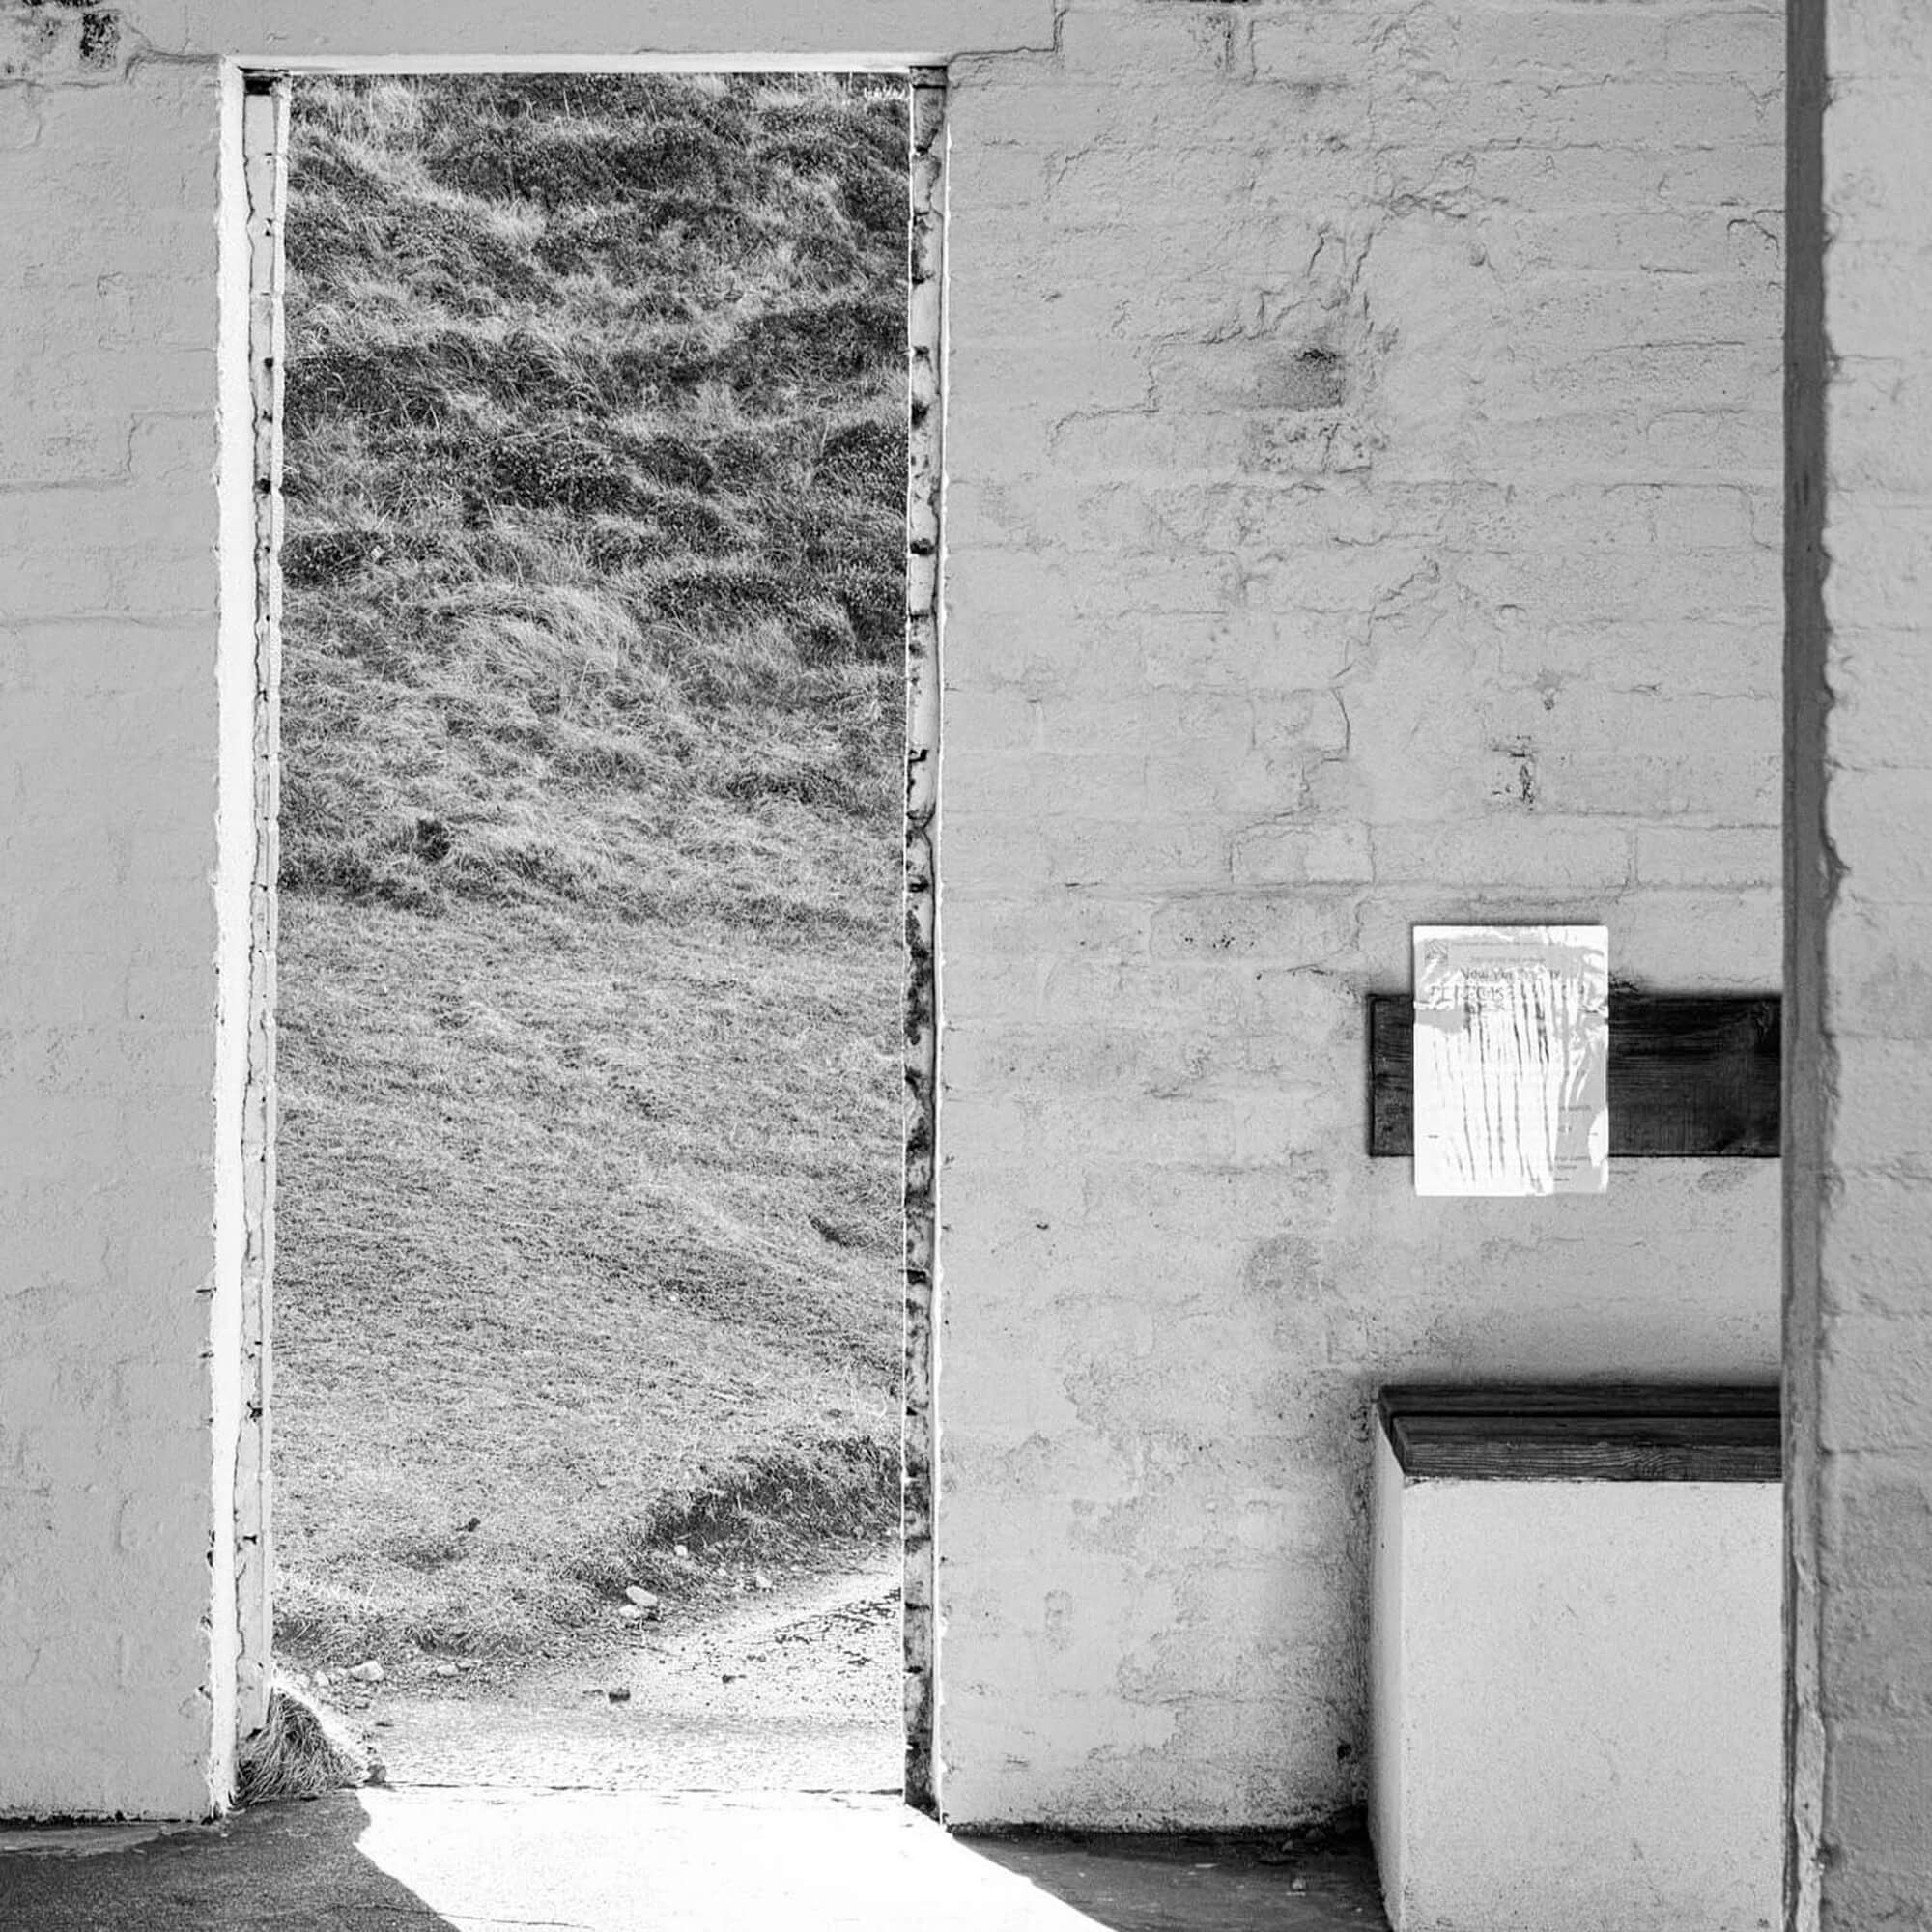 Black and white photography or a decrepit doorway